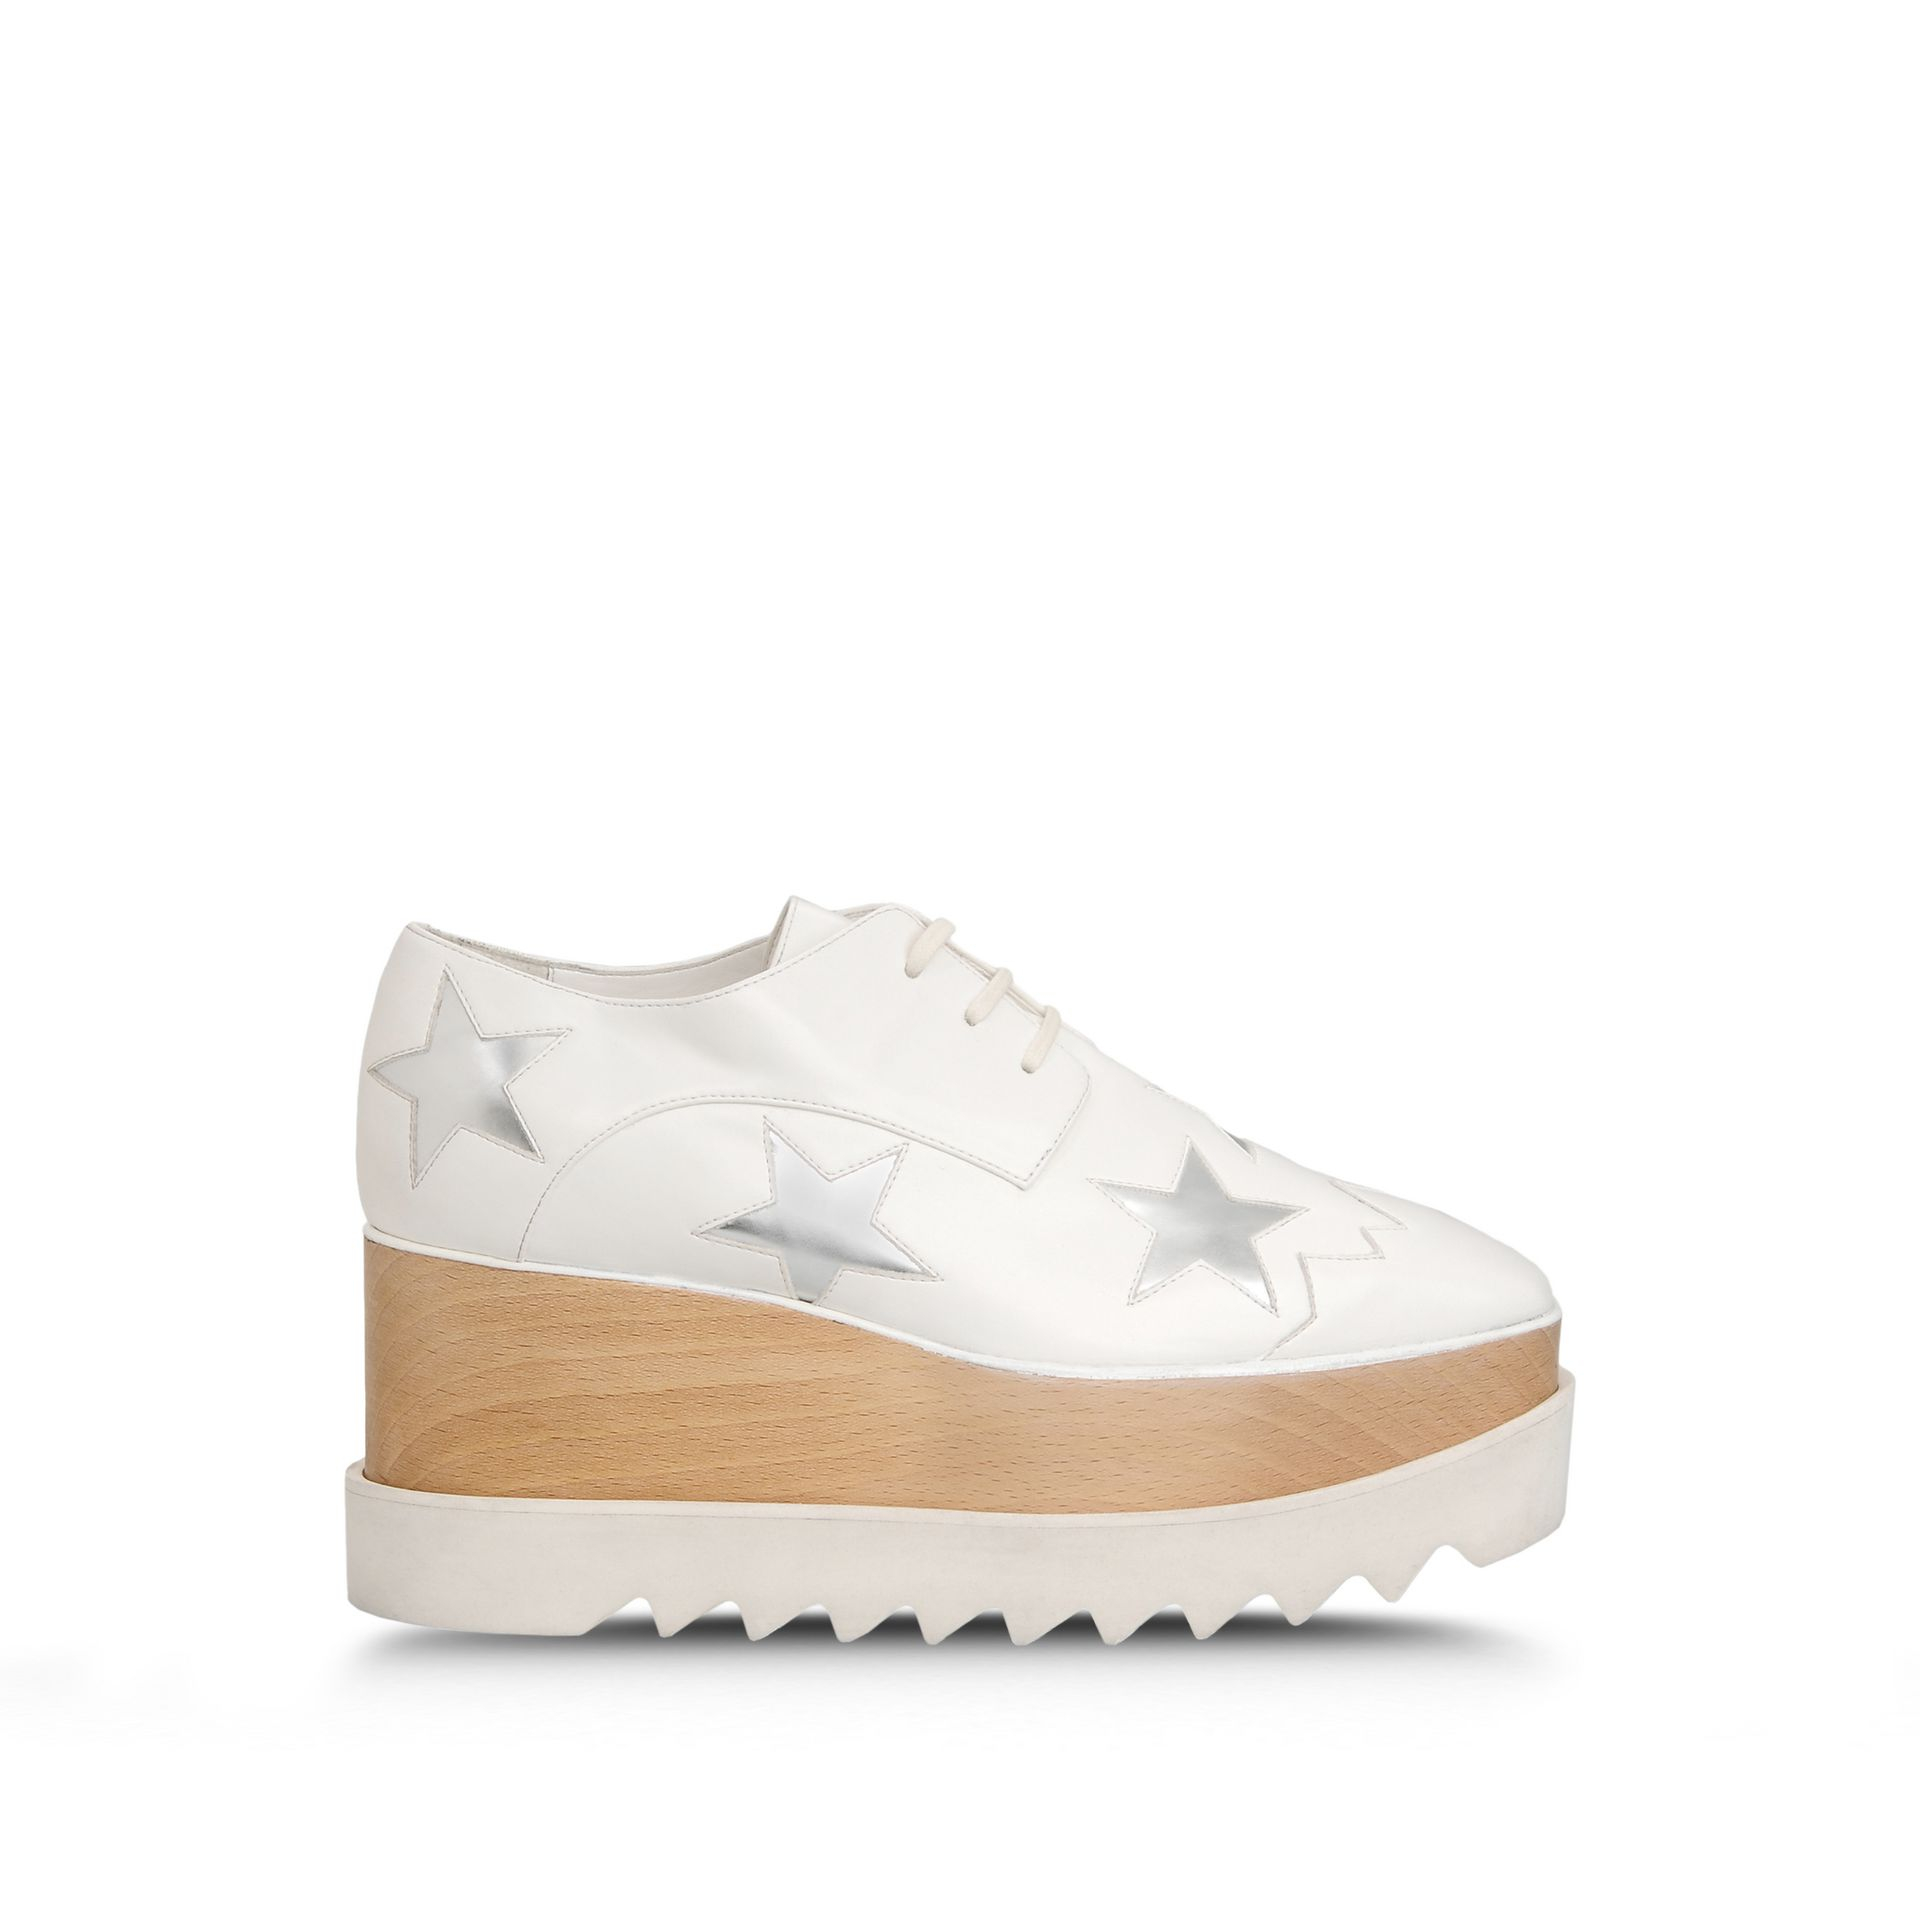 All star shoes white leather